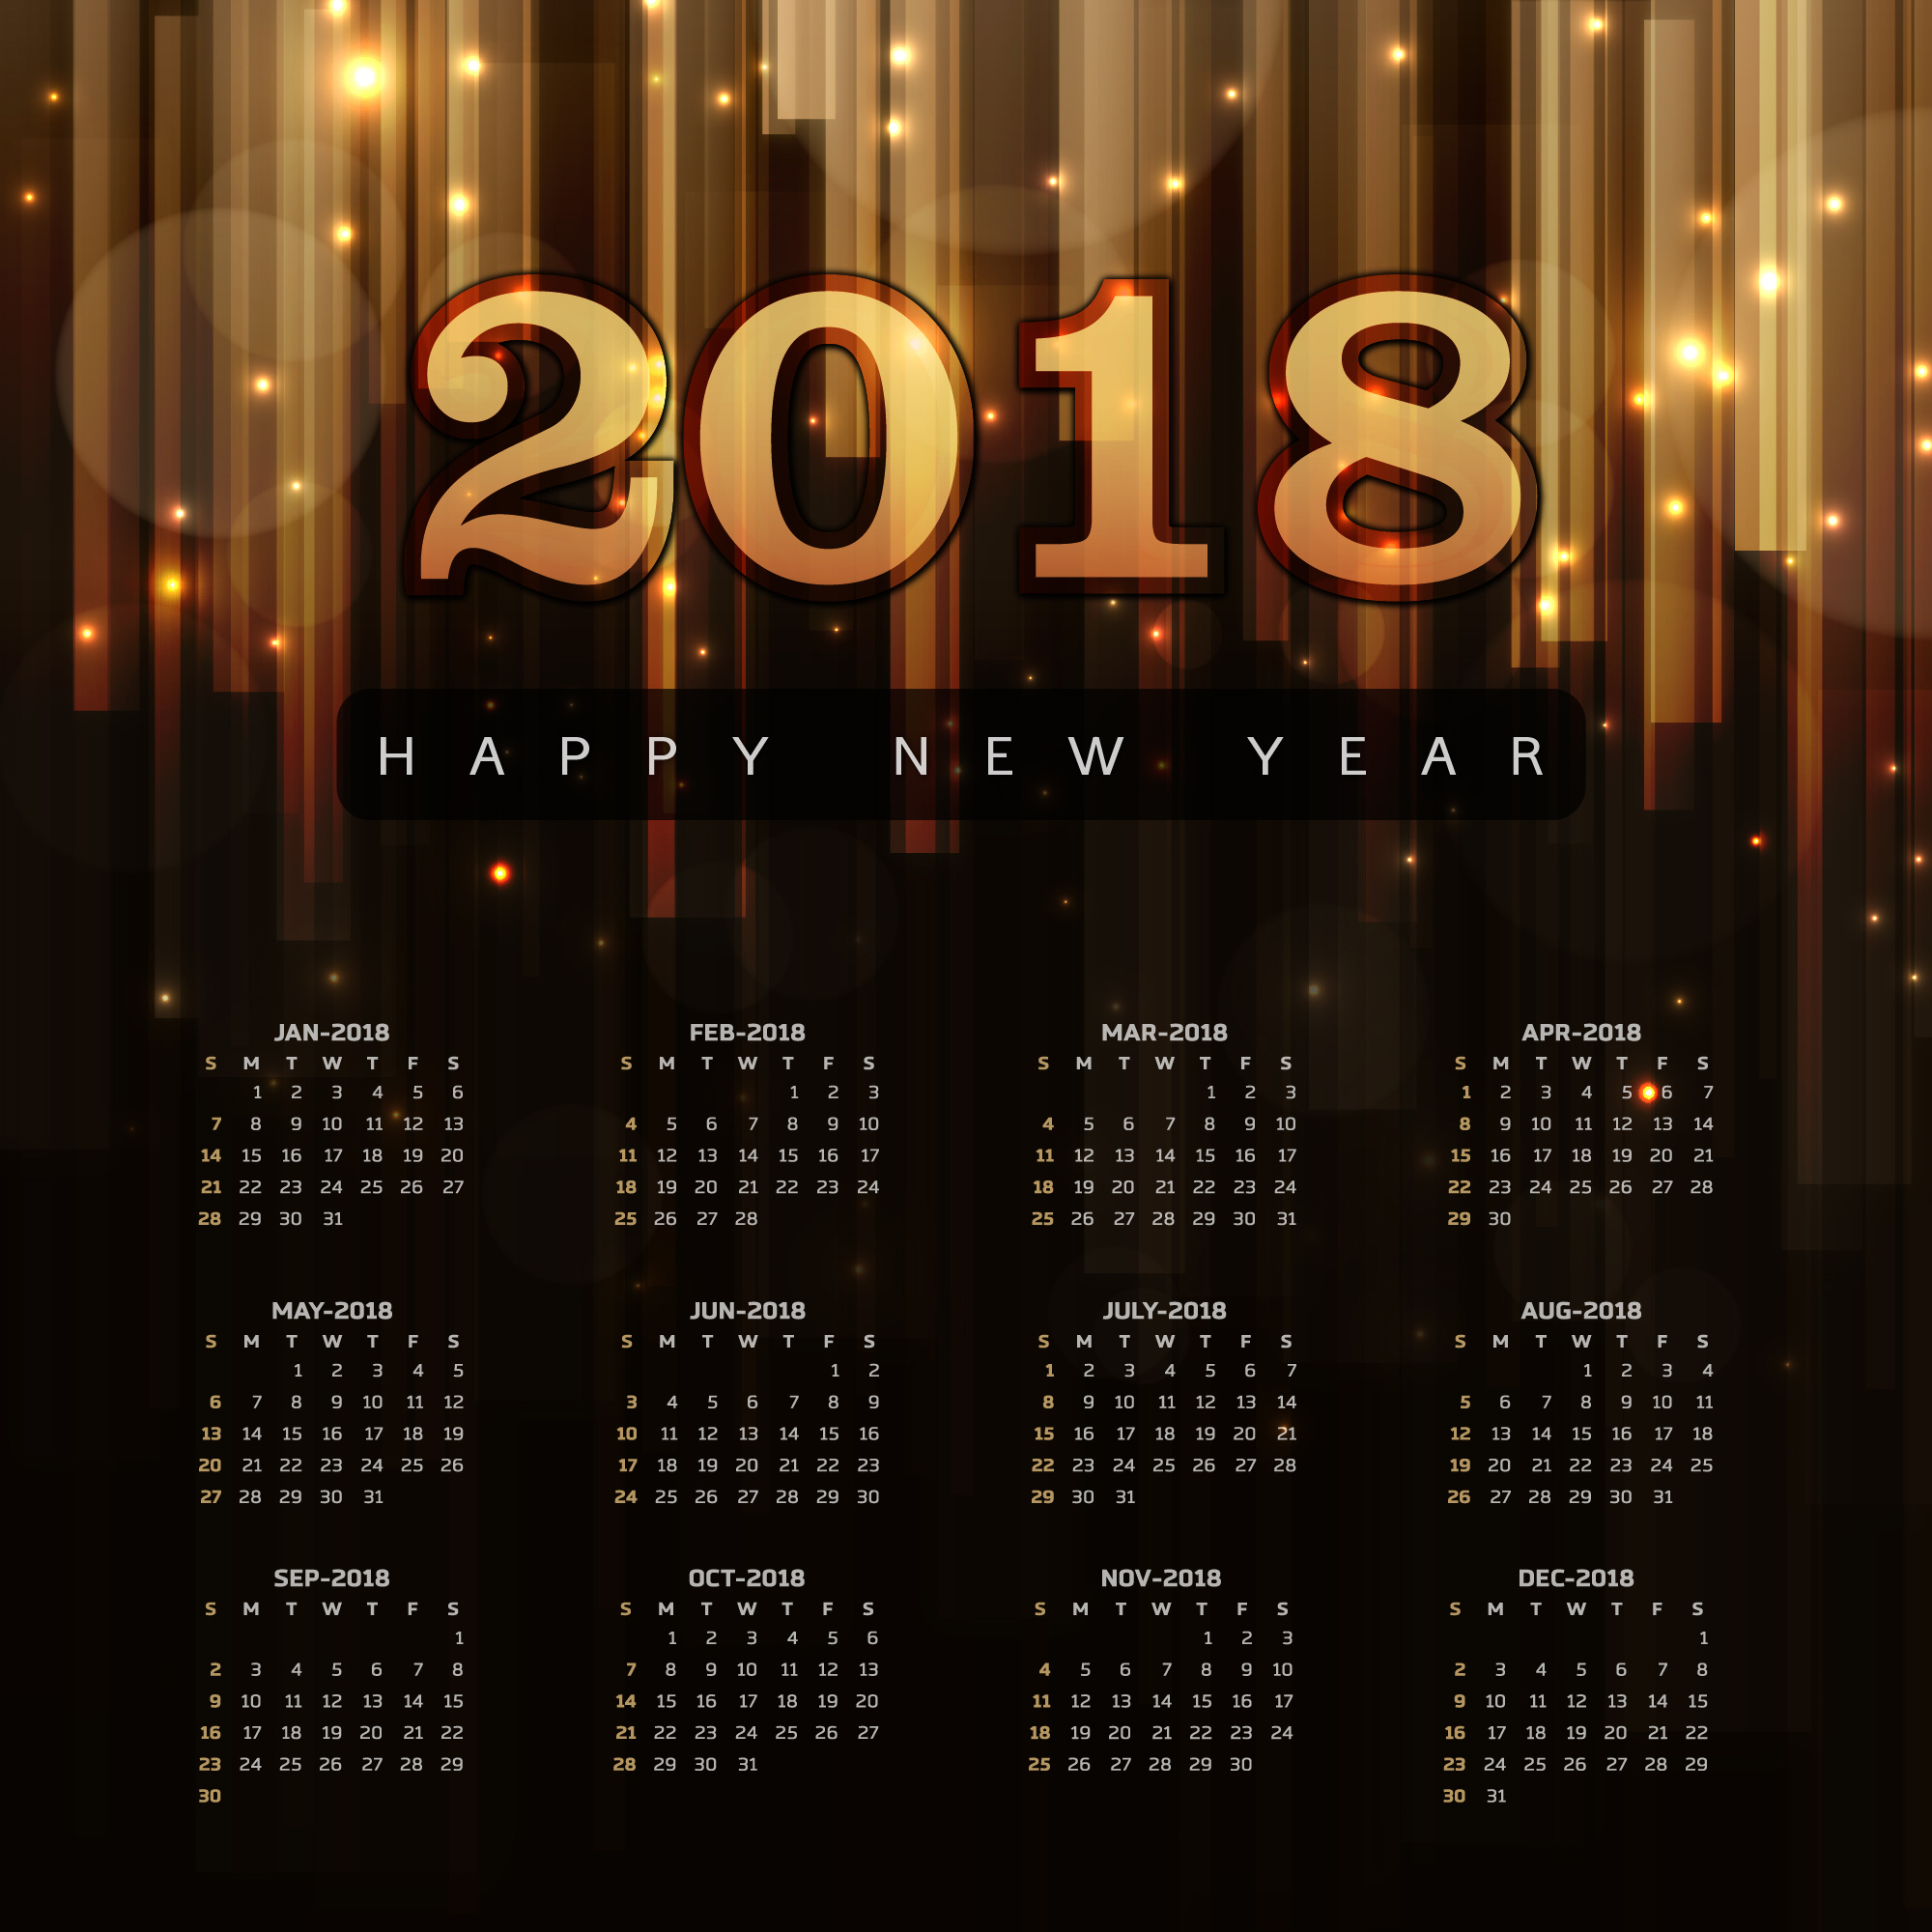 Happy New Year 2018 Elegant Royal background with Golden Bars Effect